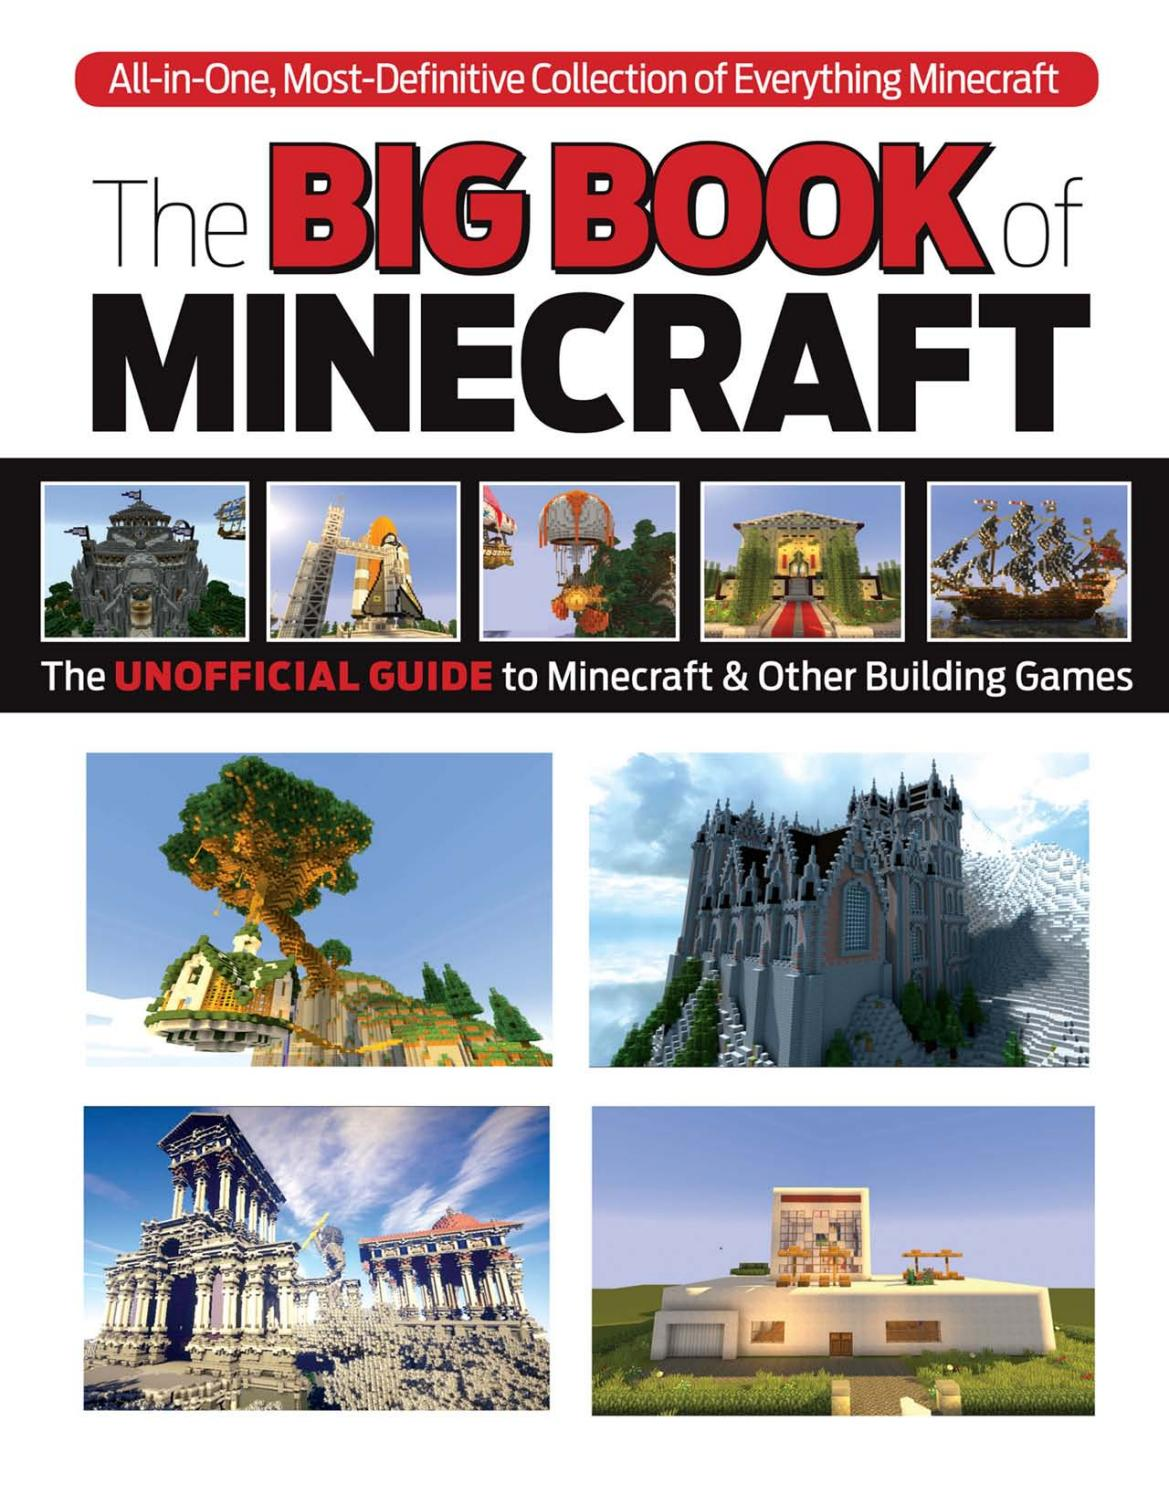 Minecraft hg servers 1-3 2-4 betting system sports betting picks baseball reference